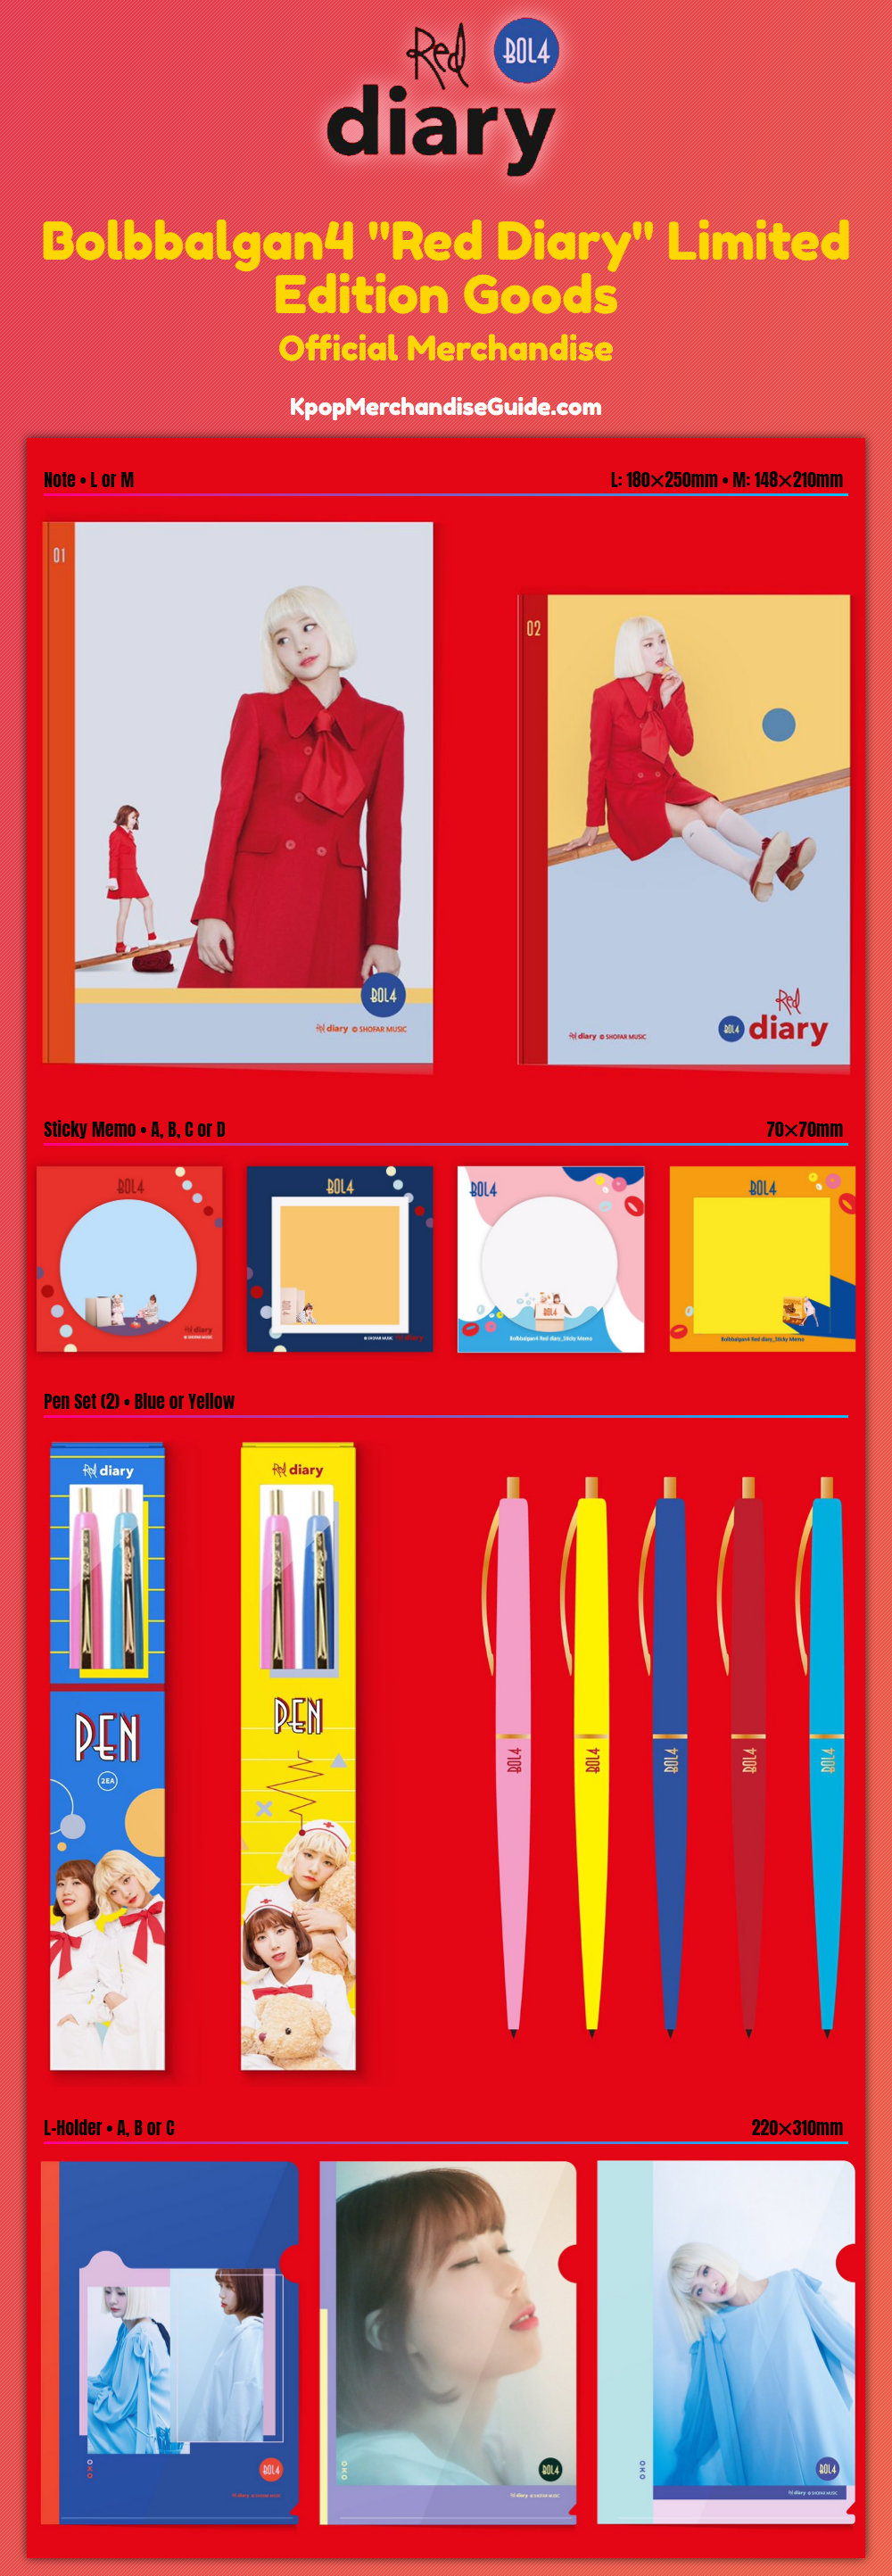 Bolbbalgan4 Red Diary Official Merchandise